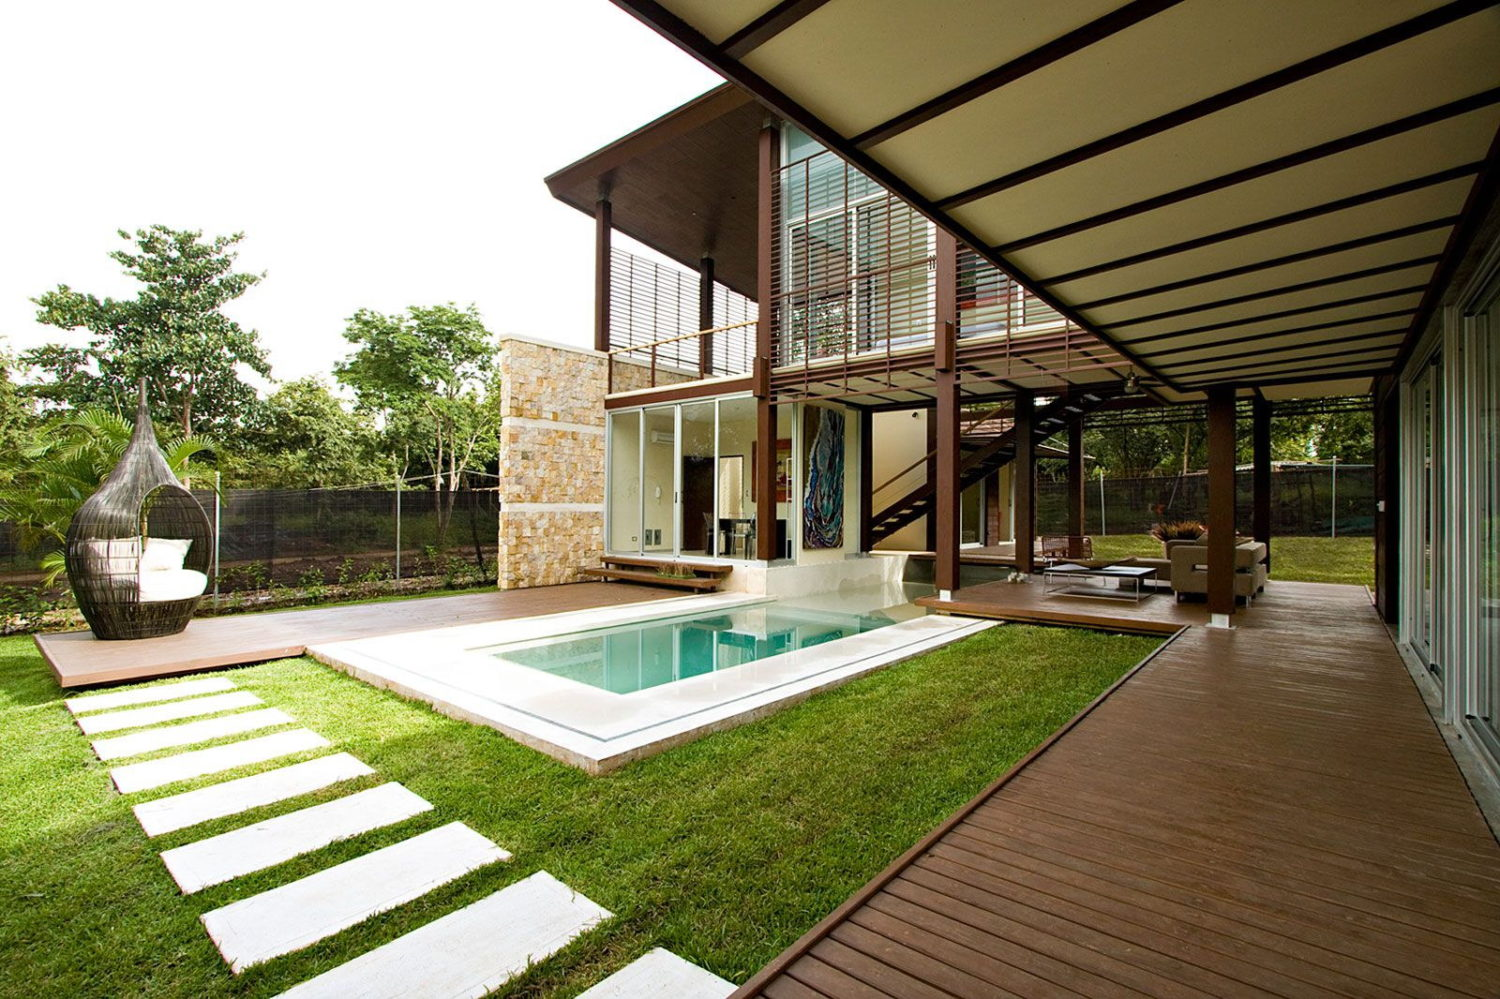 Orizon House by Andres Serpa